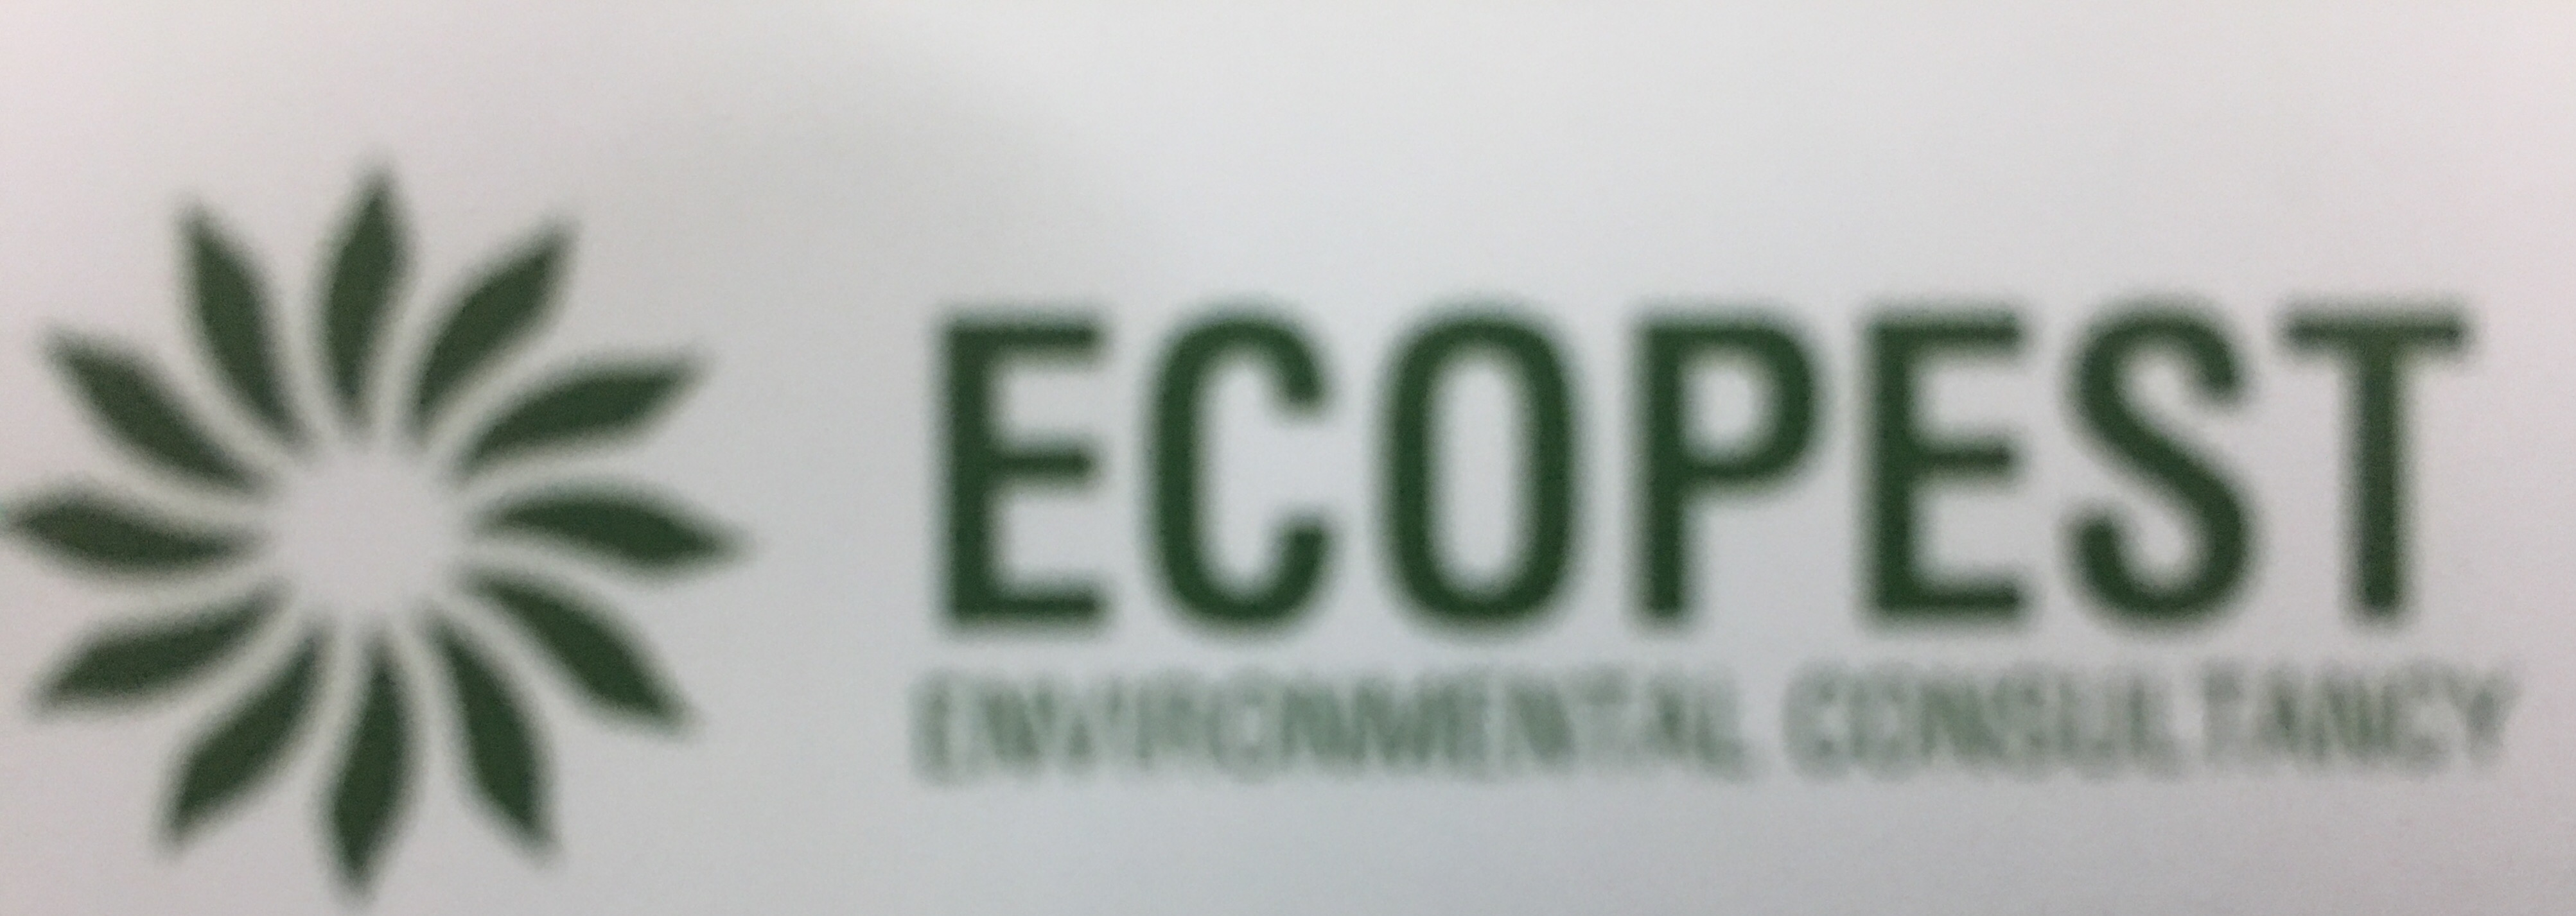 More about ECOPEST ENVIRONMENTAL CONSULTANCY